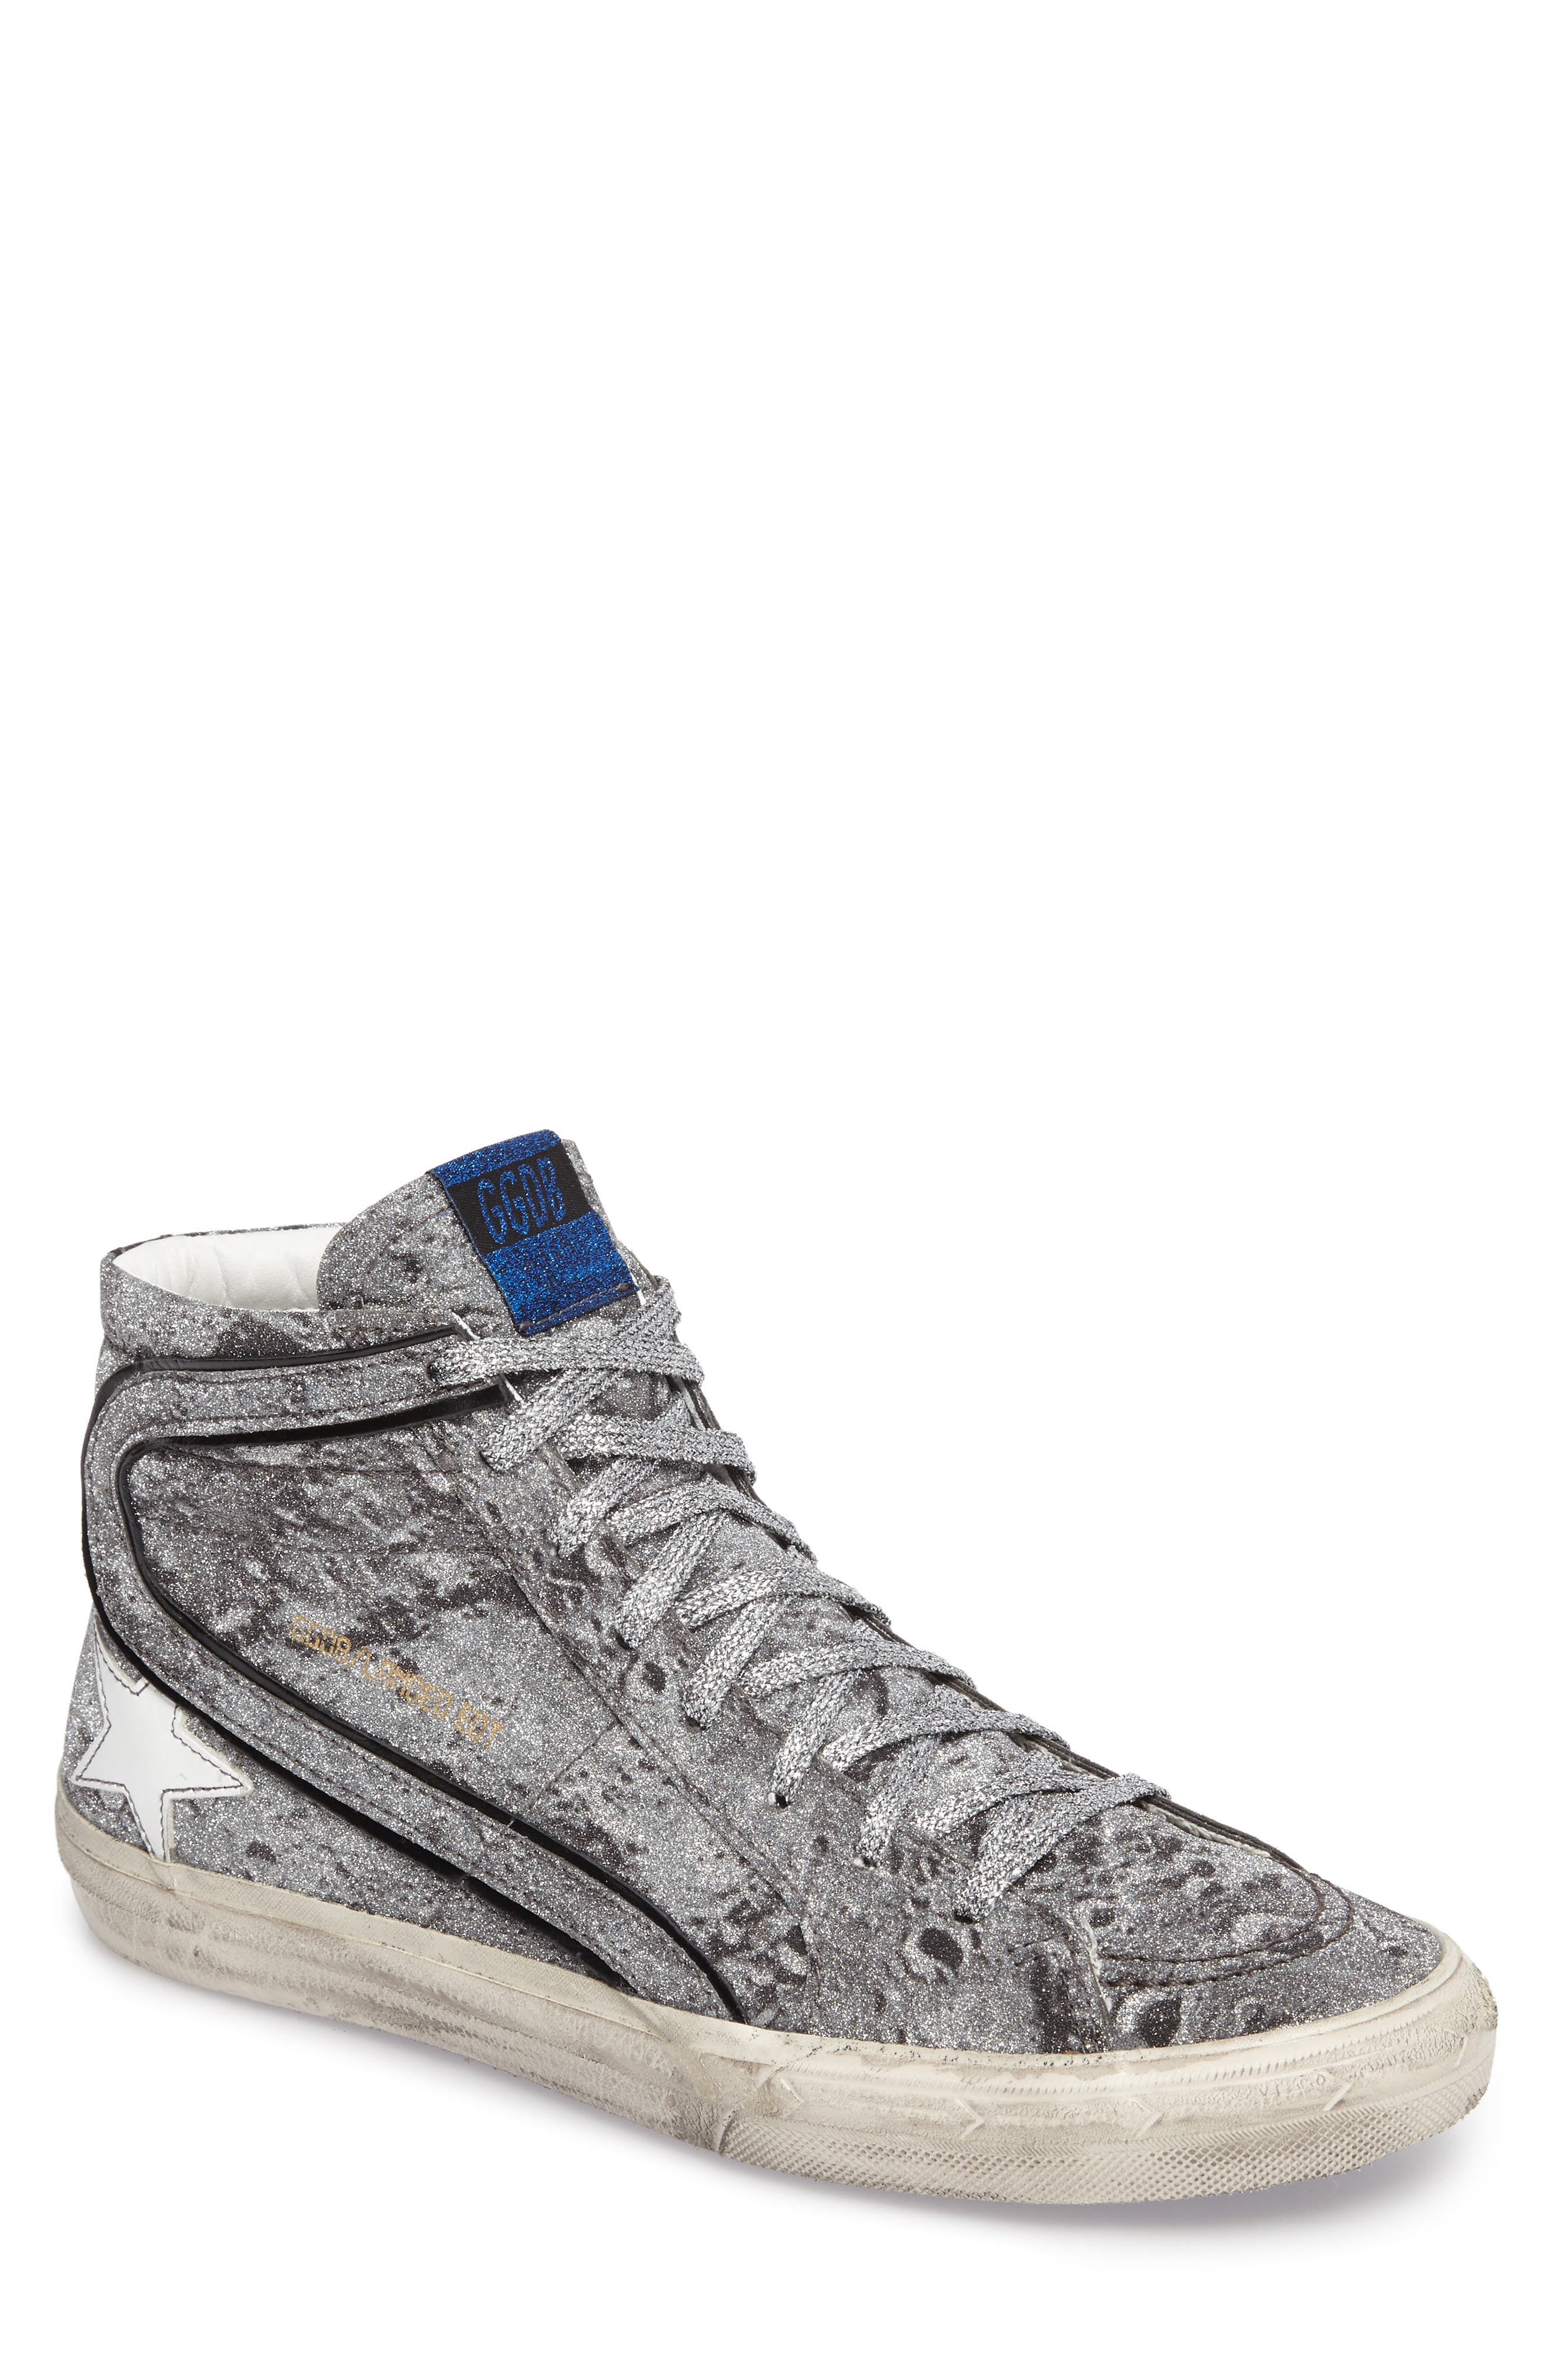 Main Image - Golden Goose Slide Sneaker (Men)